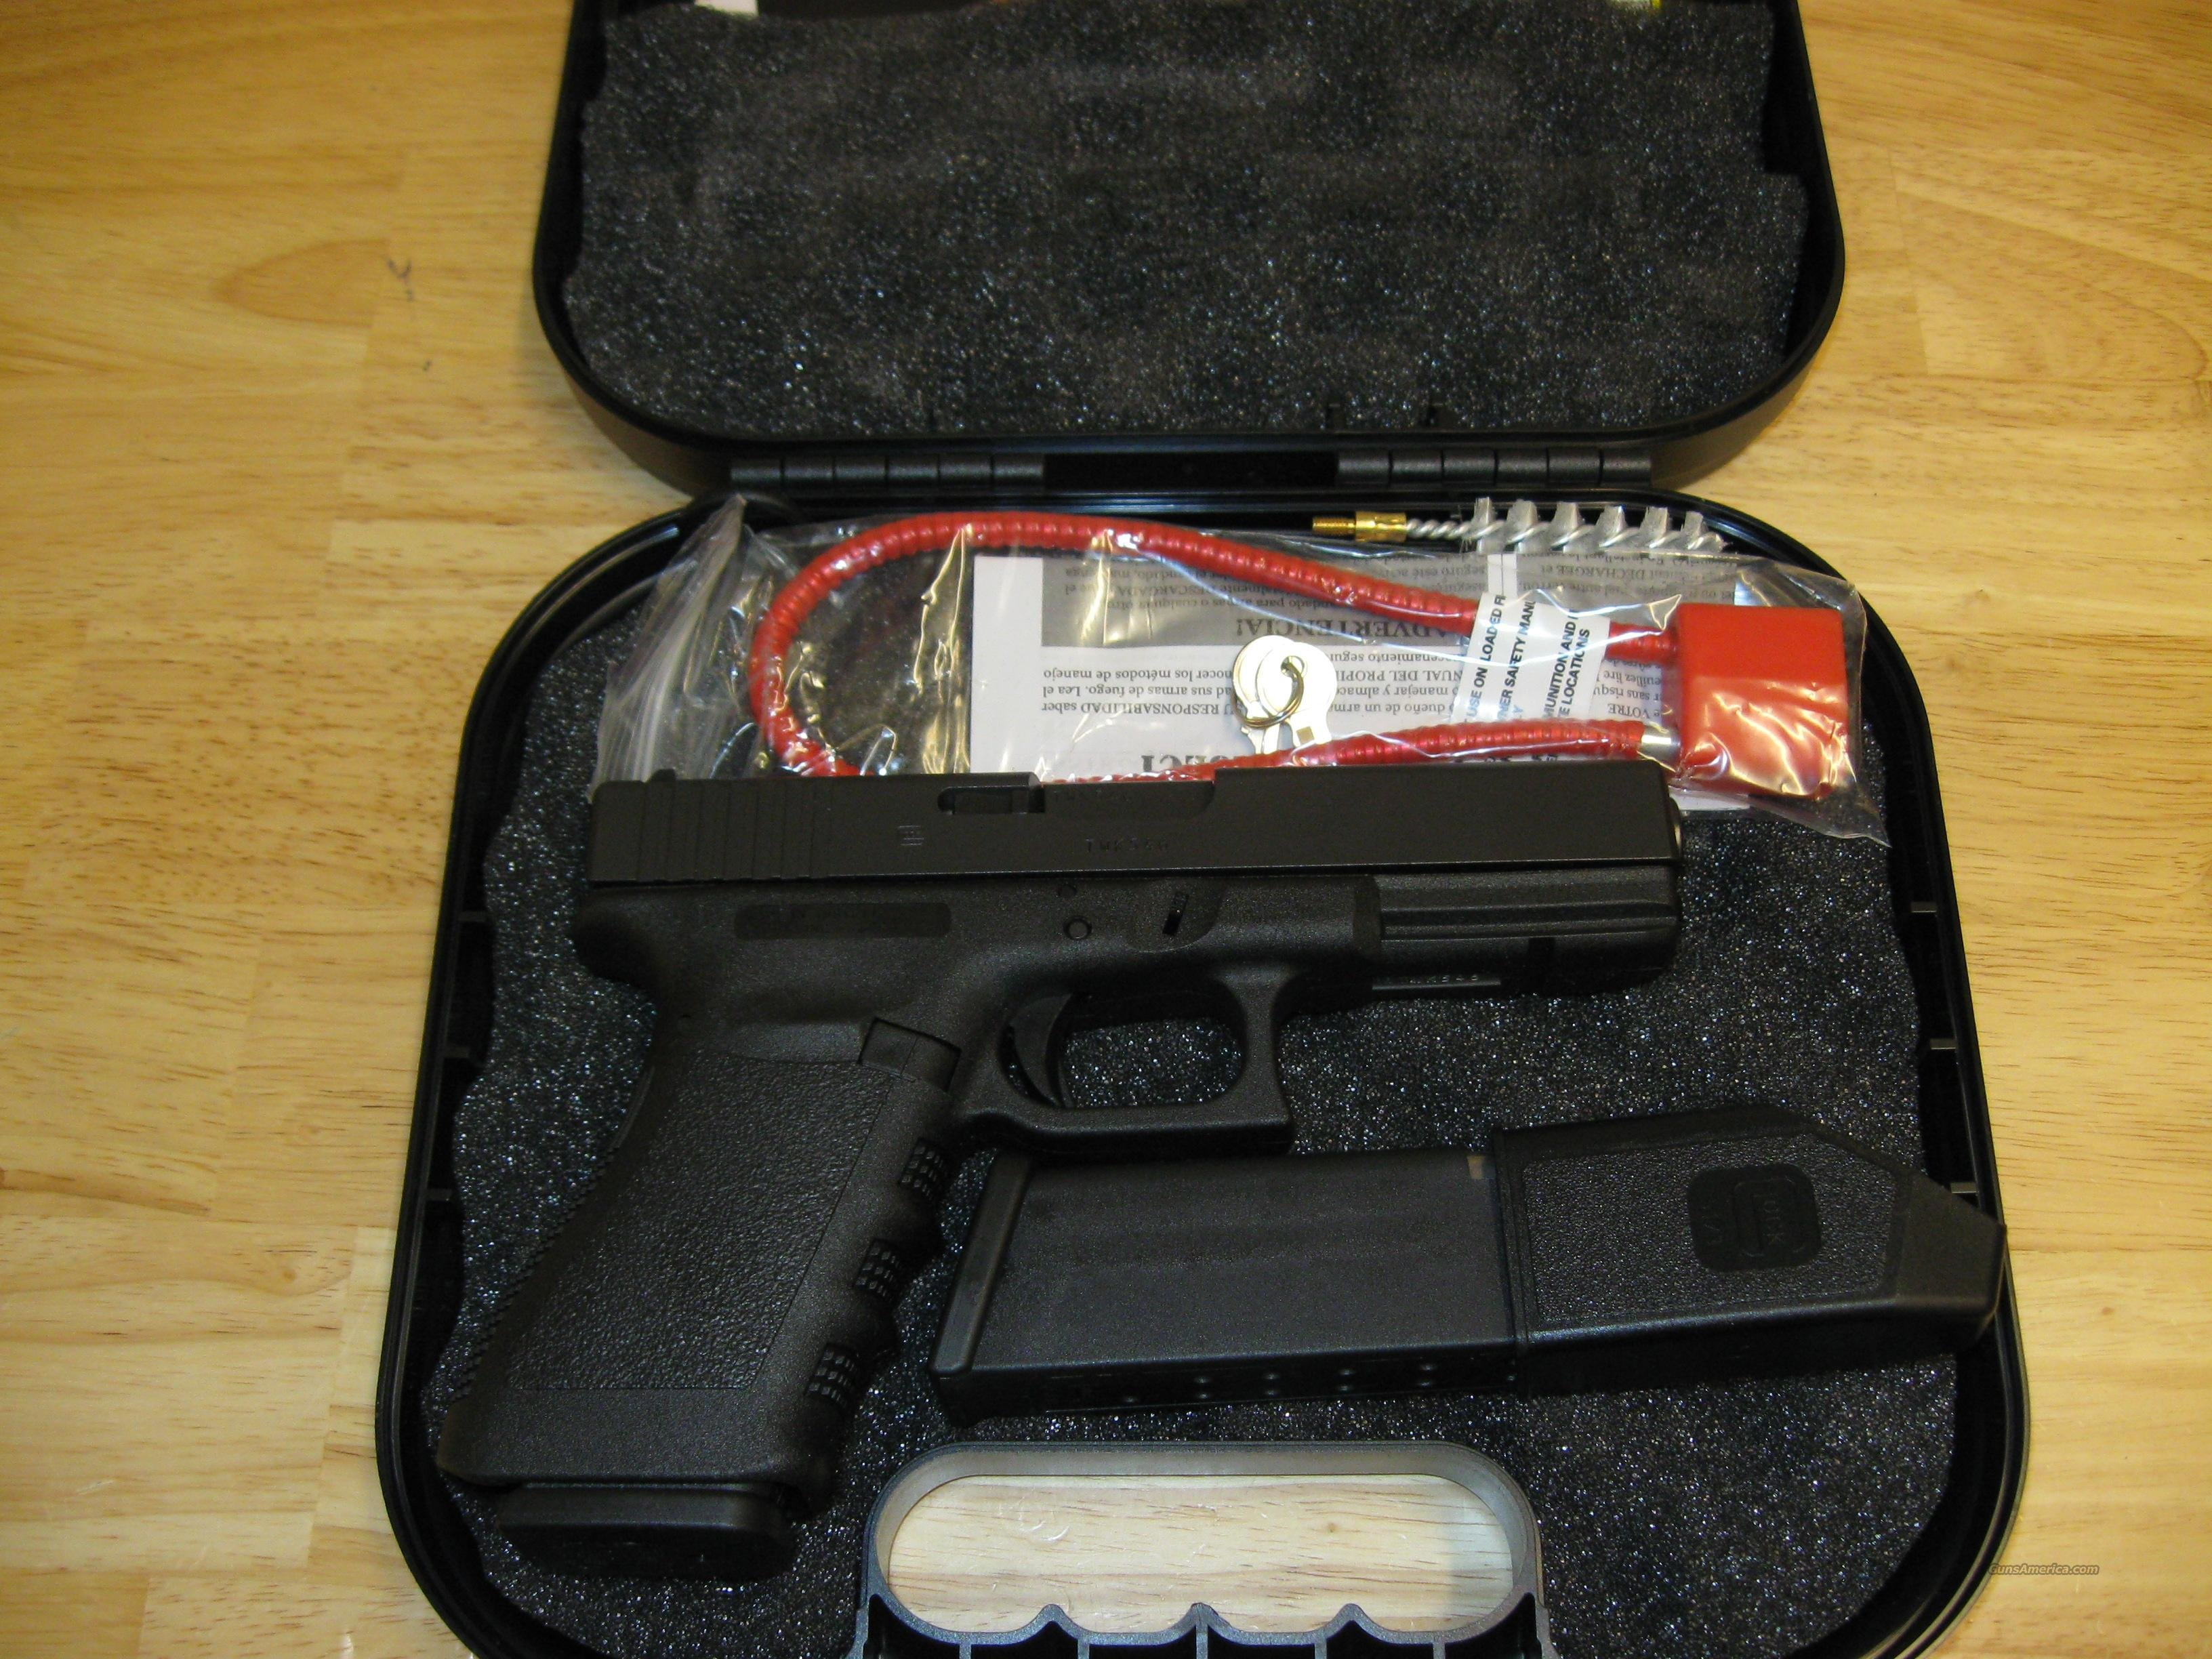 Glock 21C Standard Pistol w/Compensator PI2159203, 45 ACP, 4.60 in, Polymer Grip, Black Finish, Fixed Sights, 13 Rd  Guns > Pistols > Glock Pistols > 20/21